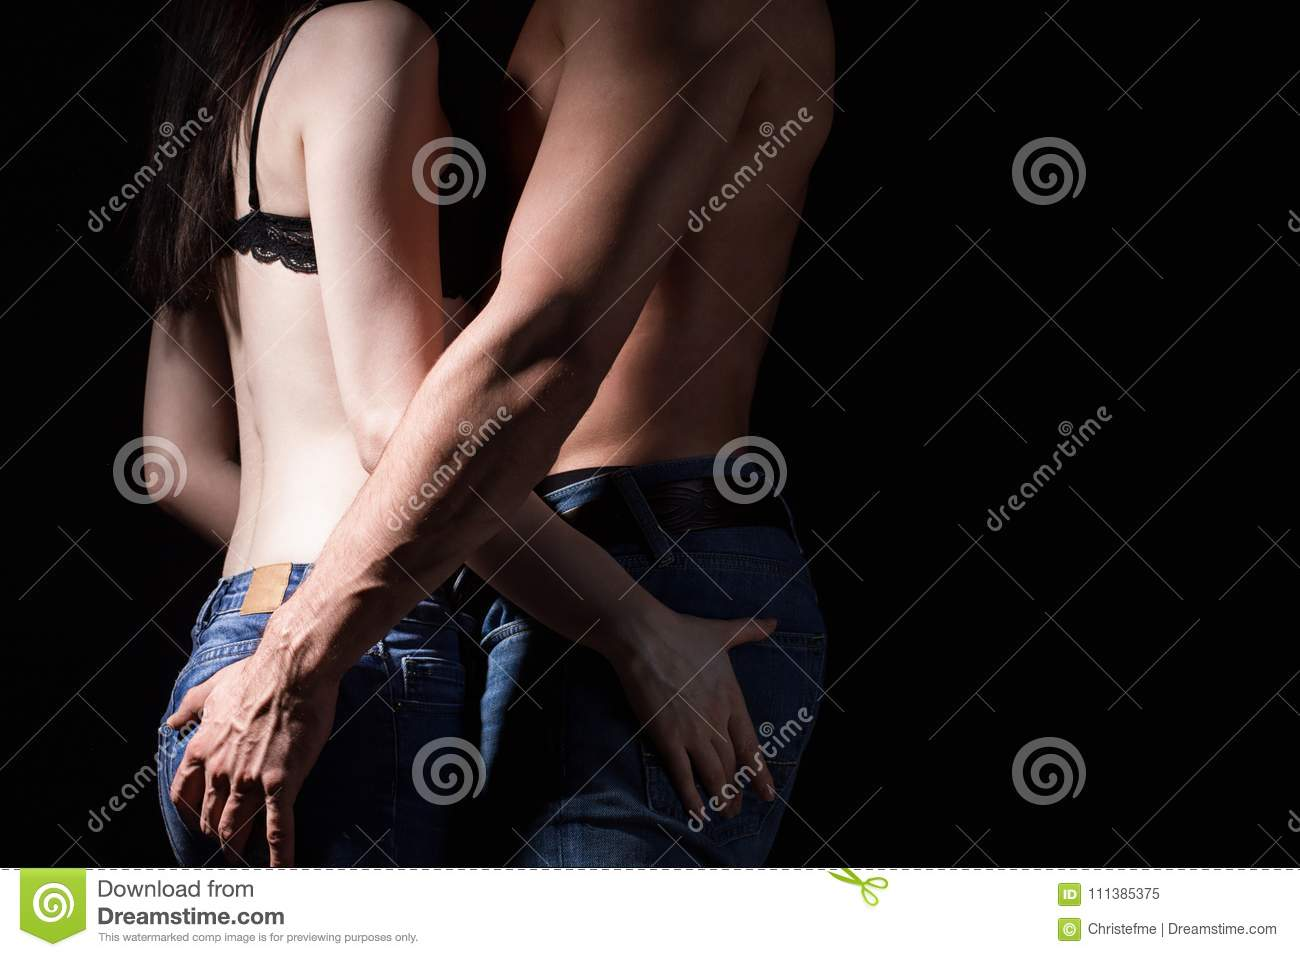 Apologise, but, sexy pictures of men touching women